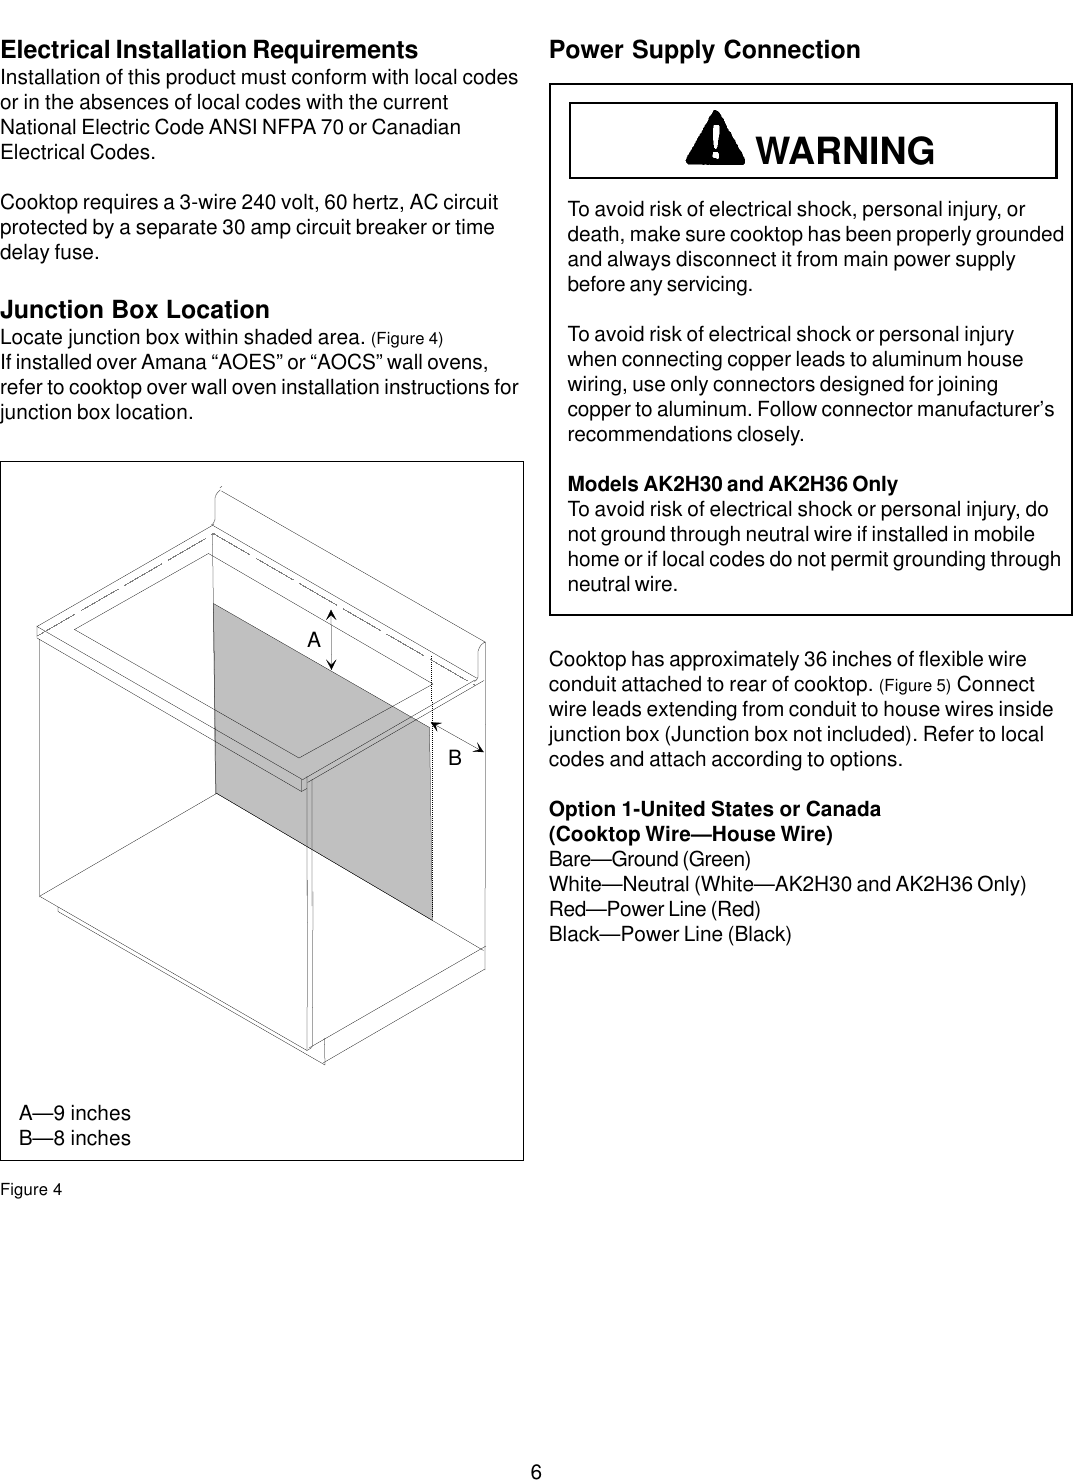 Amana Ak2h30 Users Manual 31916801 Requirements For Wiring A House Page 6 Of 12